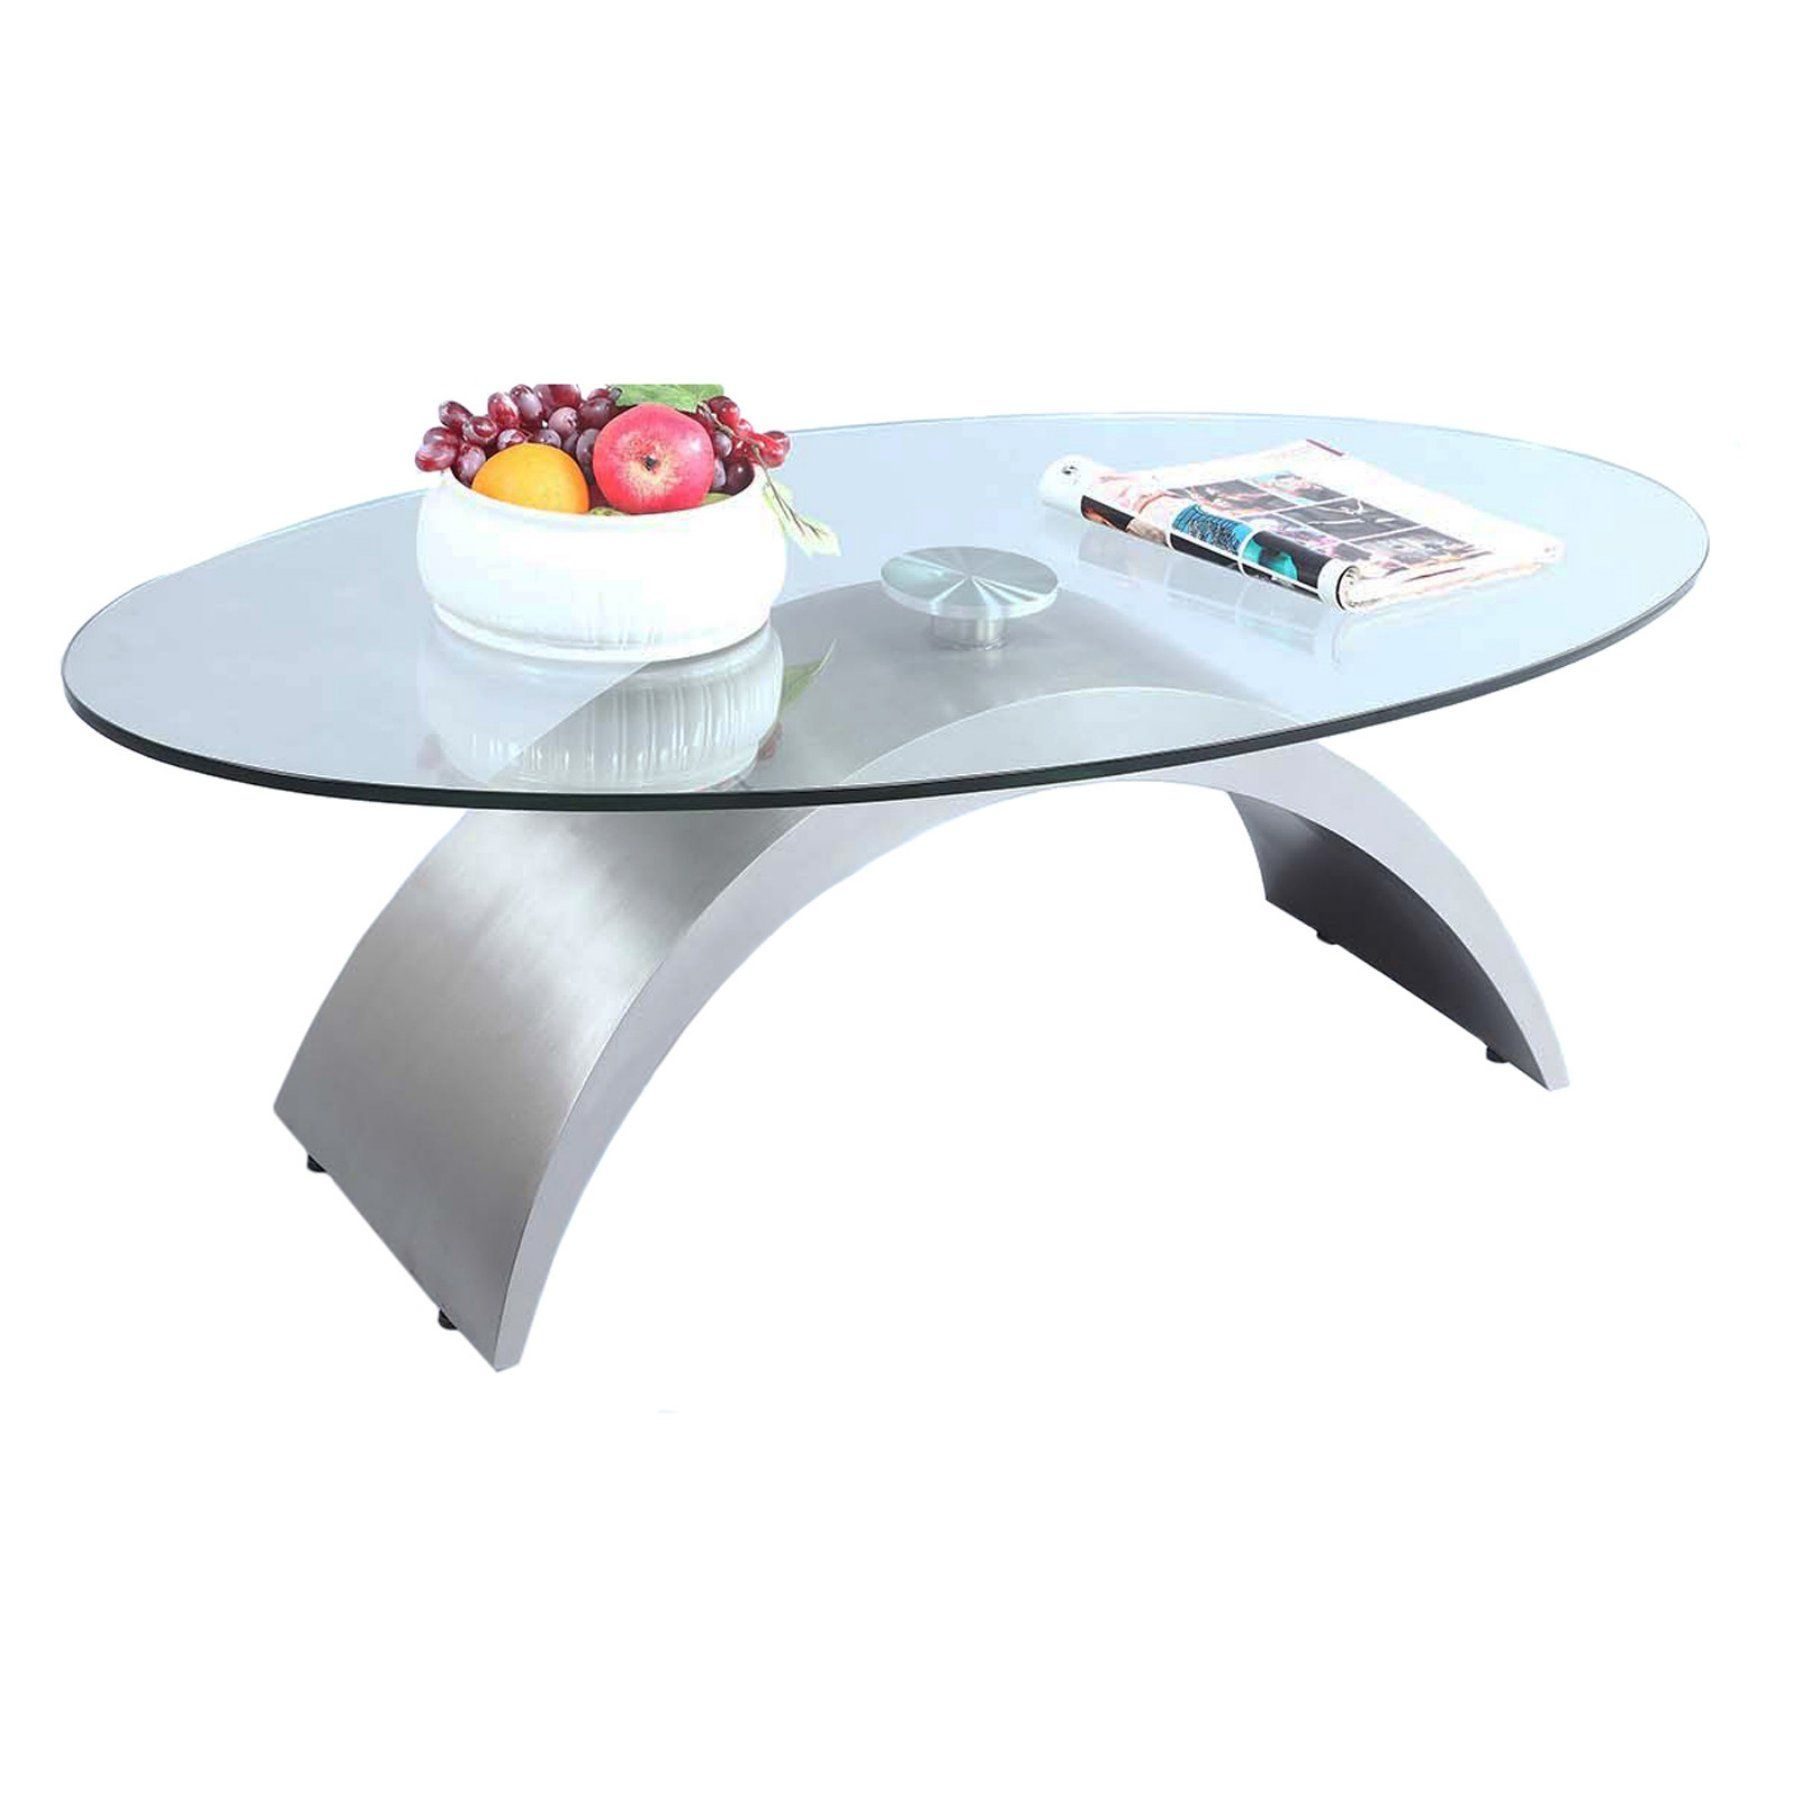 Chintaly Oval Glass Top Coffee Table CTY2335